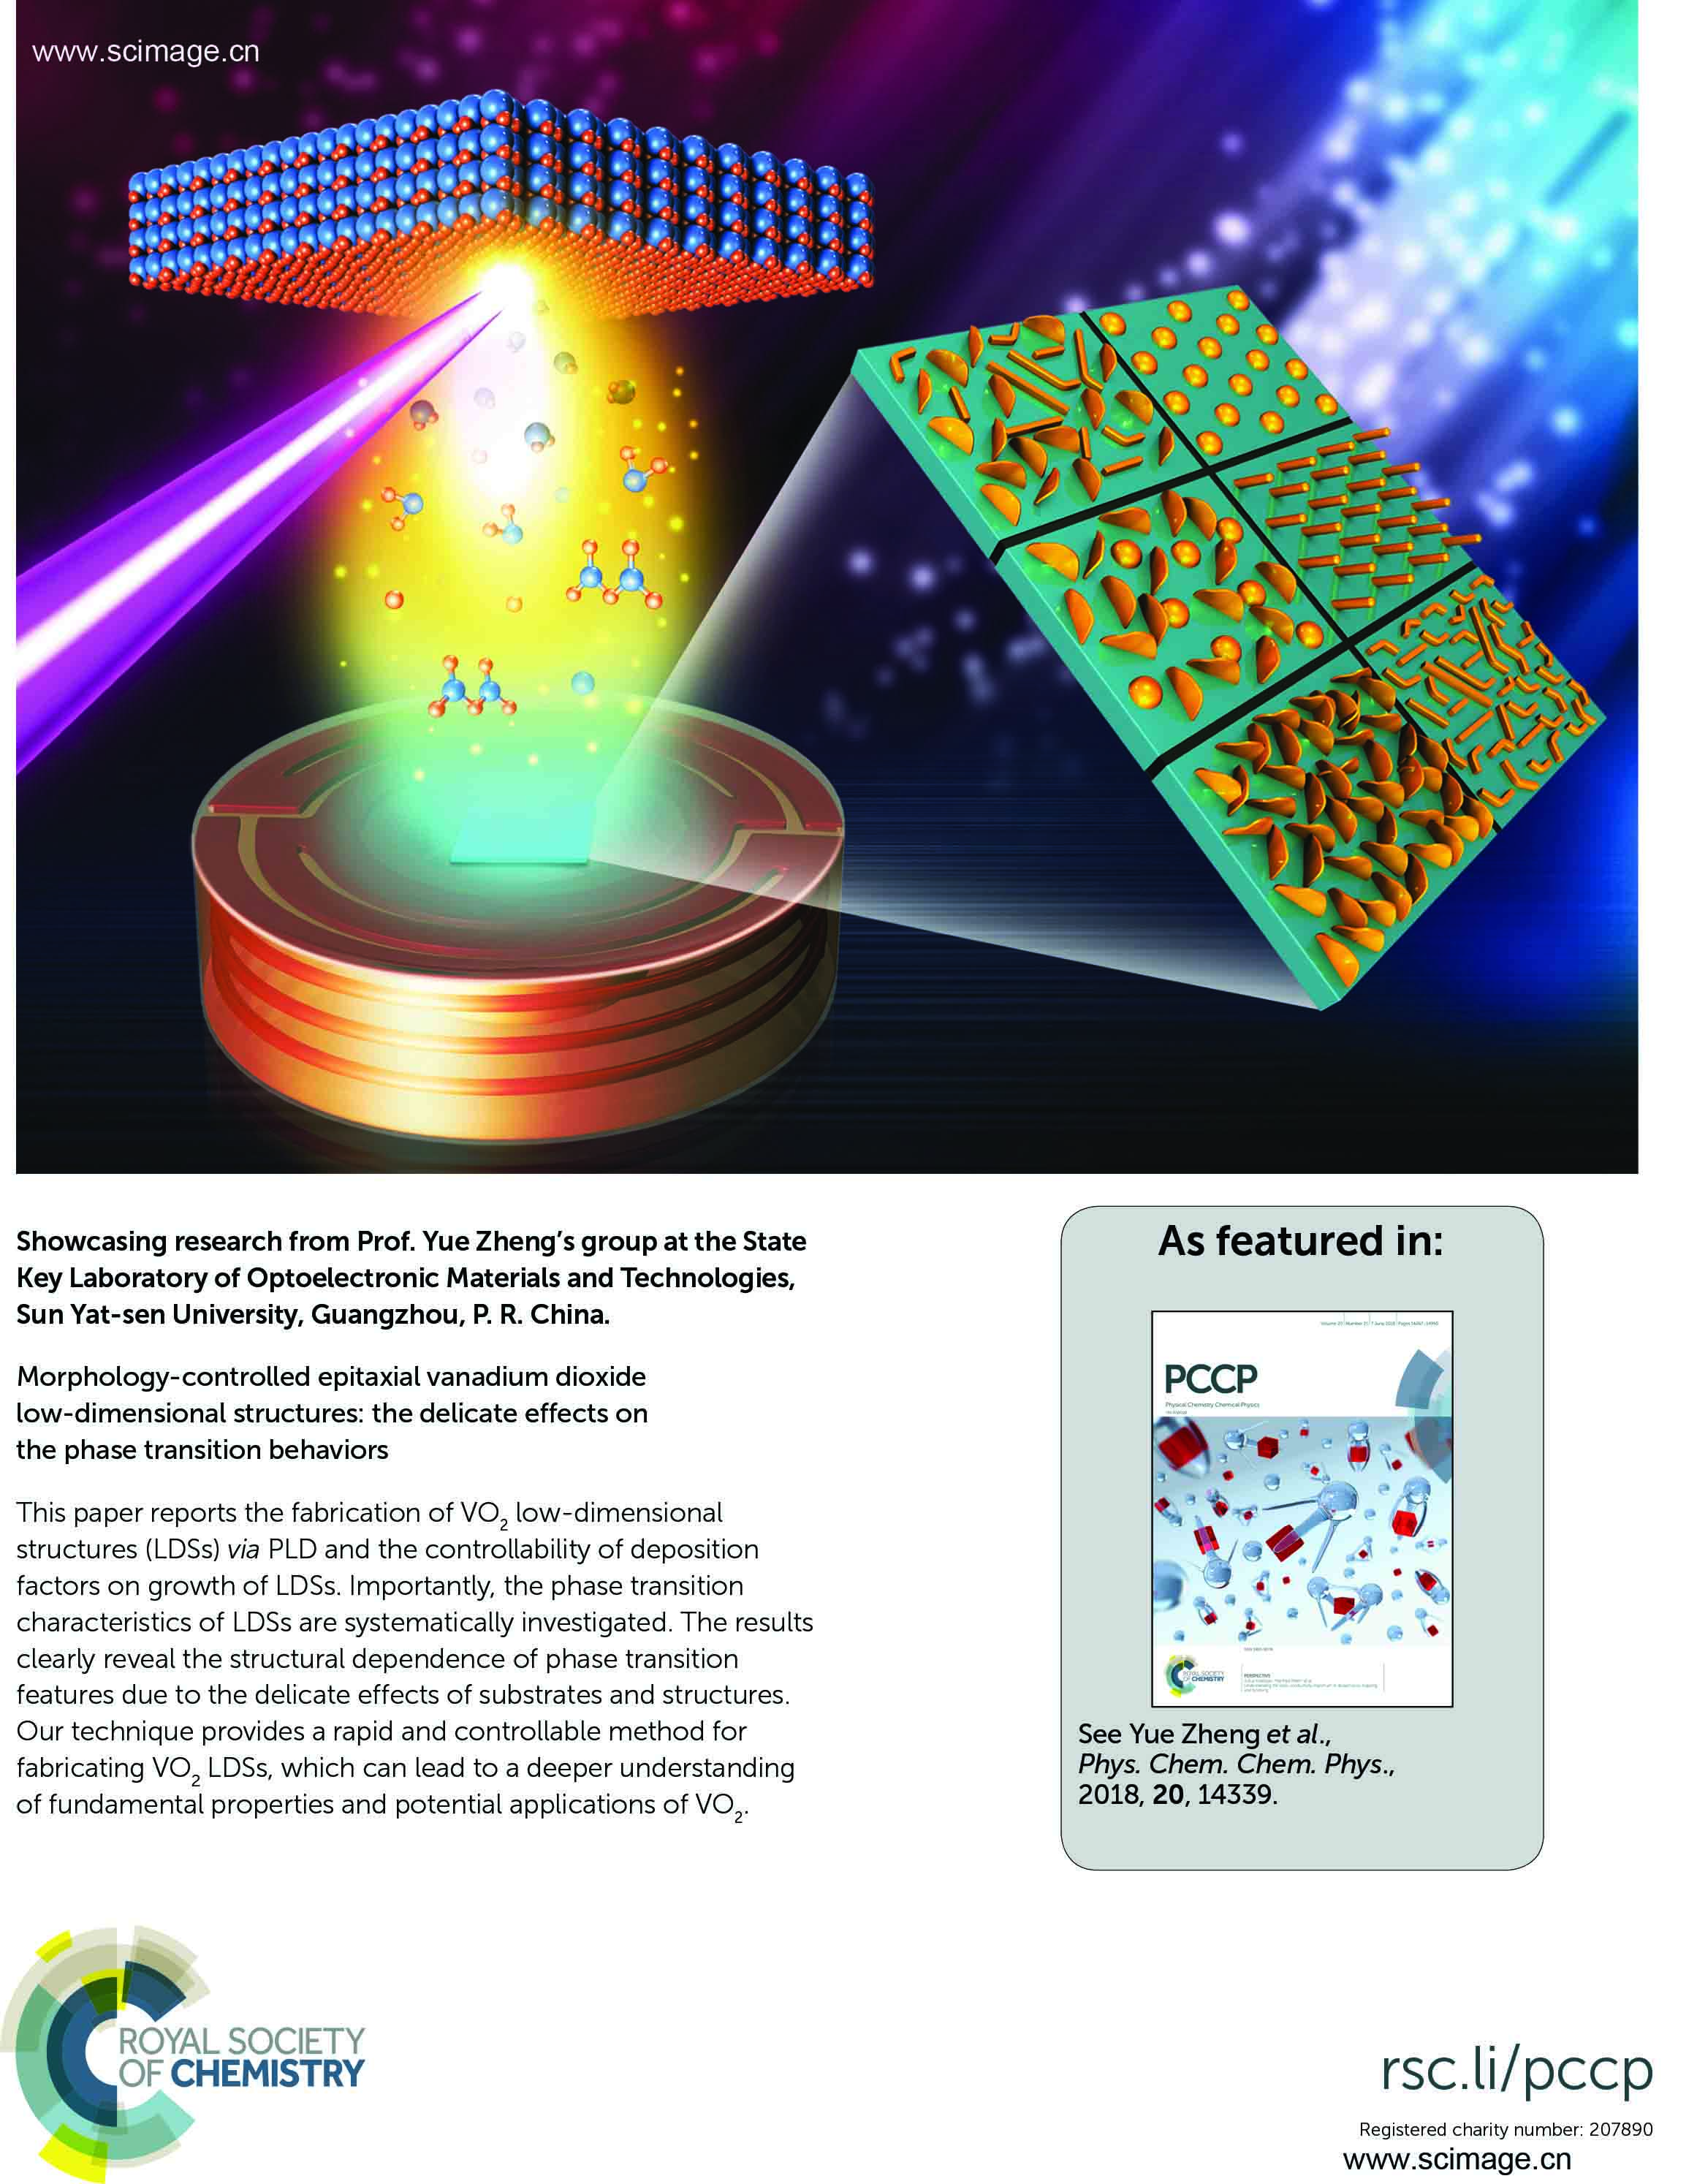 Morphology-controlled epitaxial vanadium dioxide low-dimensional structures: the delicate effects on the phase transition behaviors